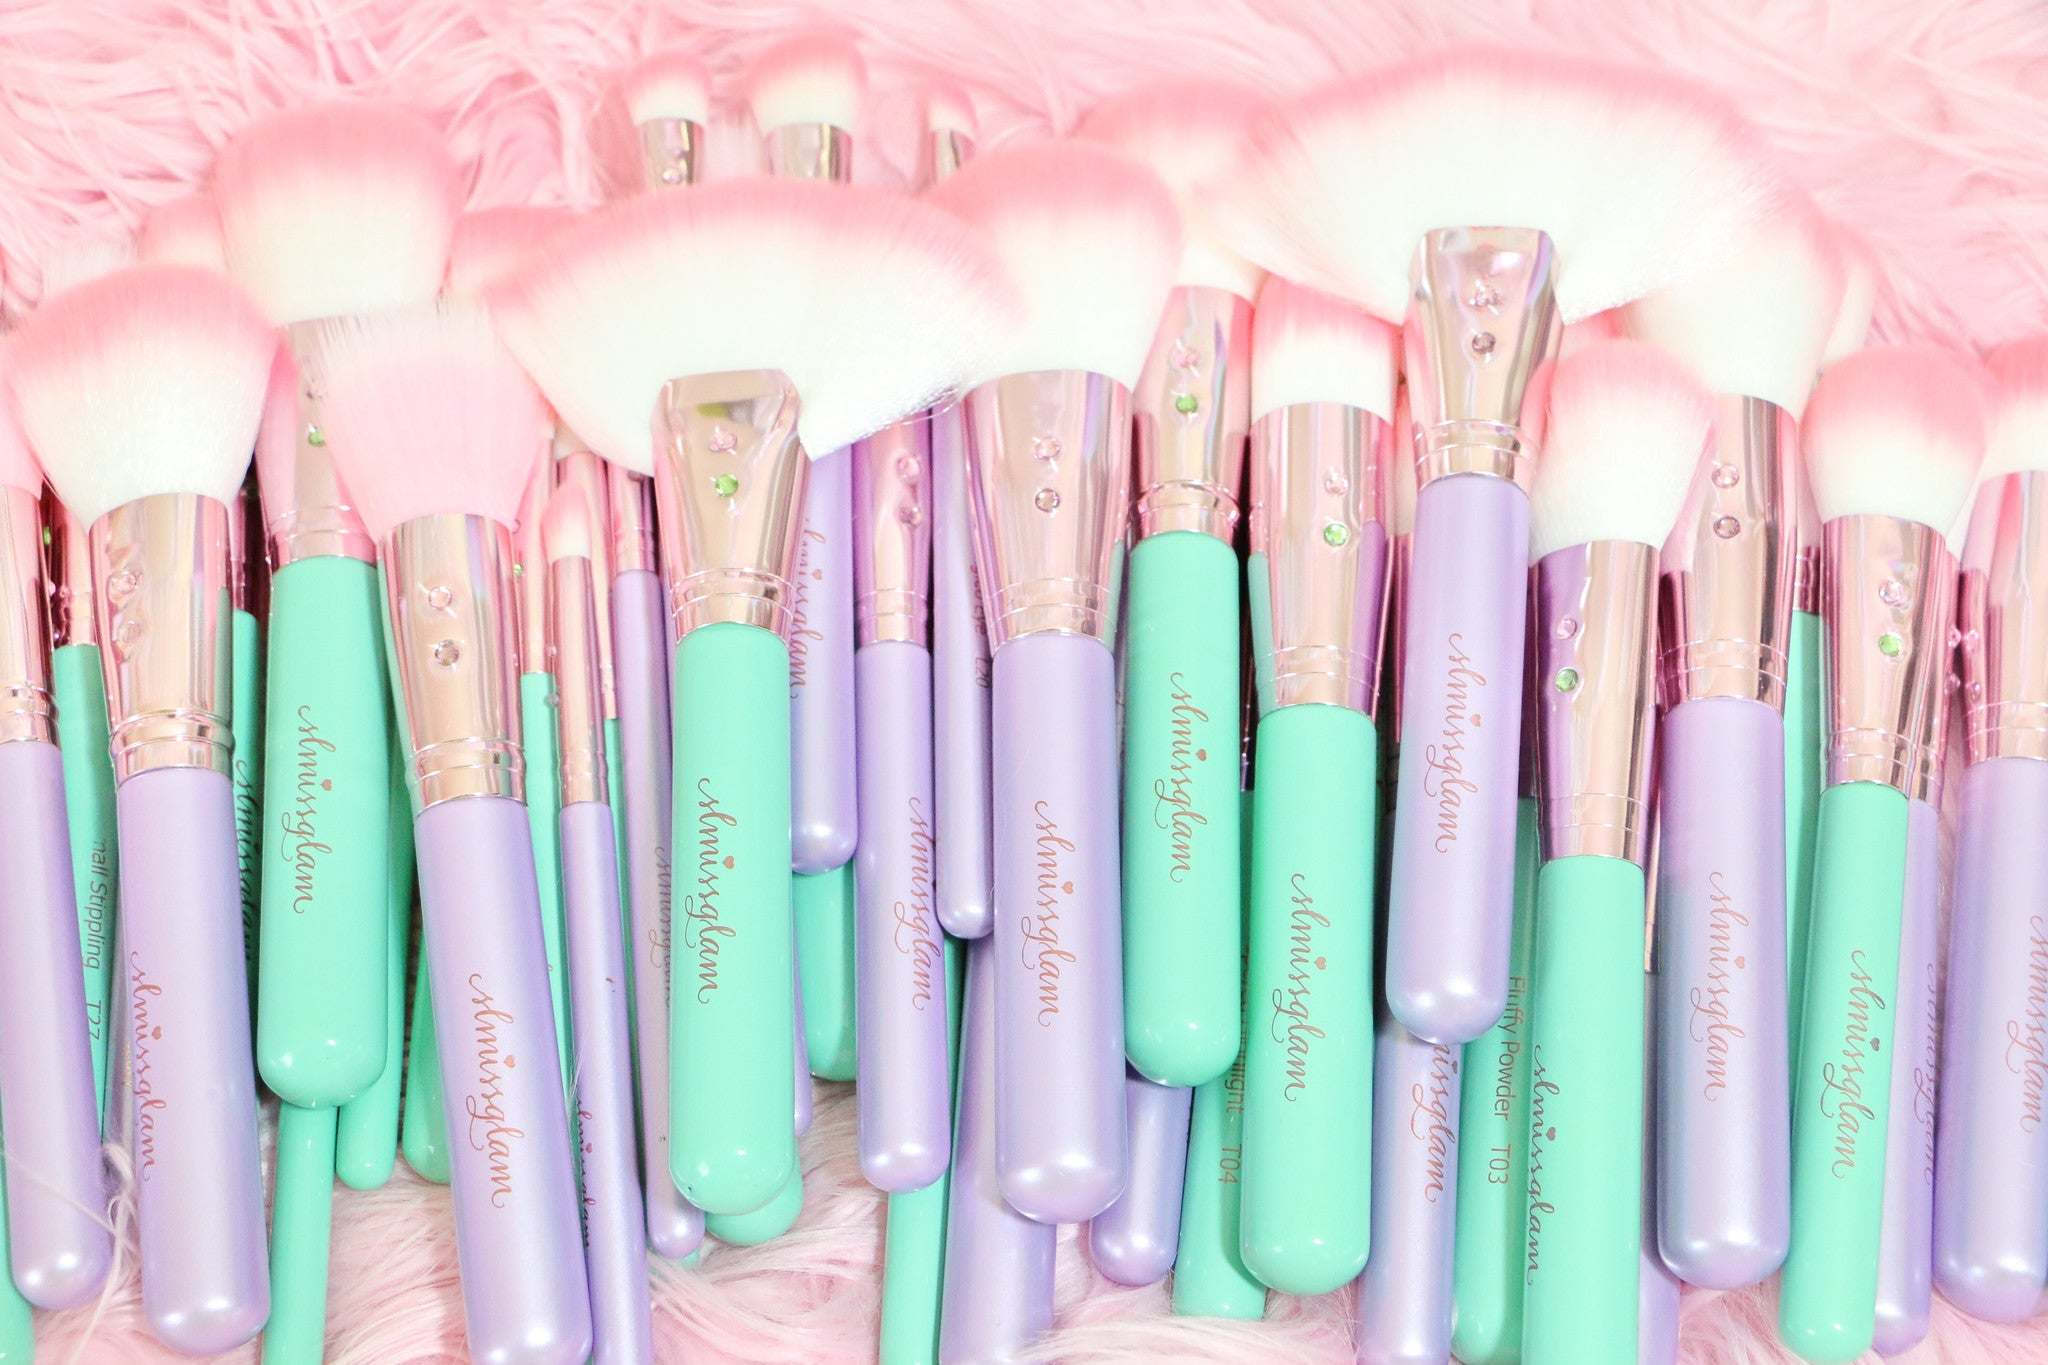 Teal Glam Brush Book💕